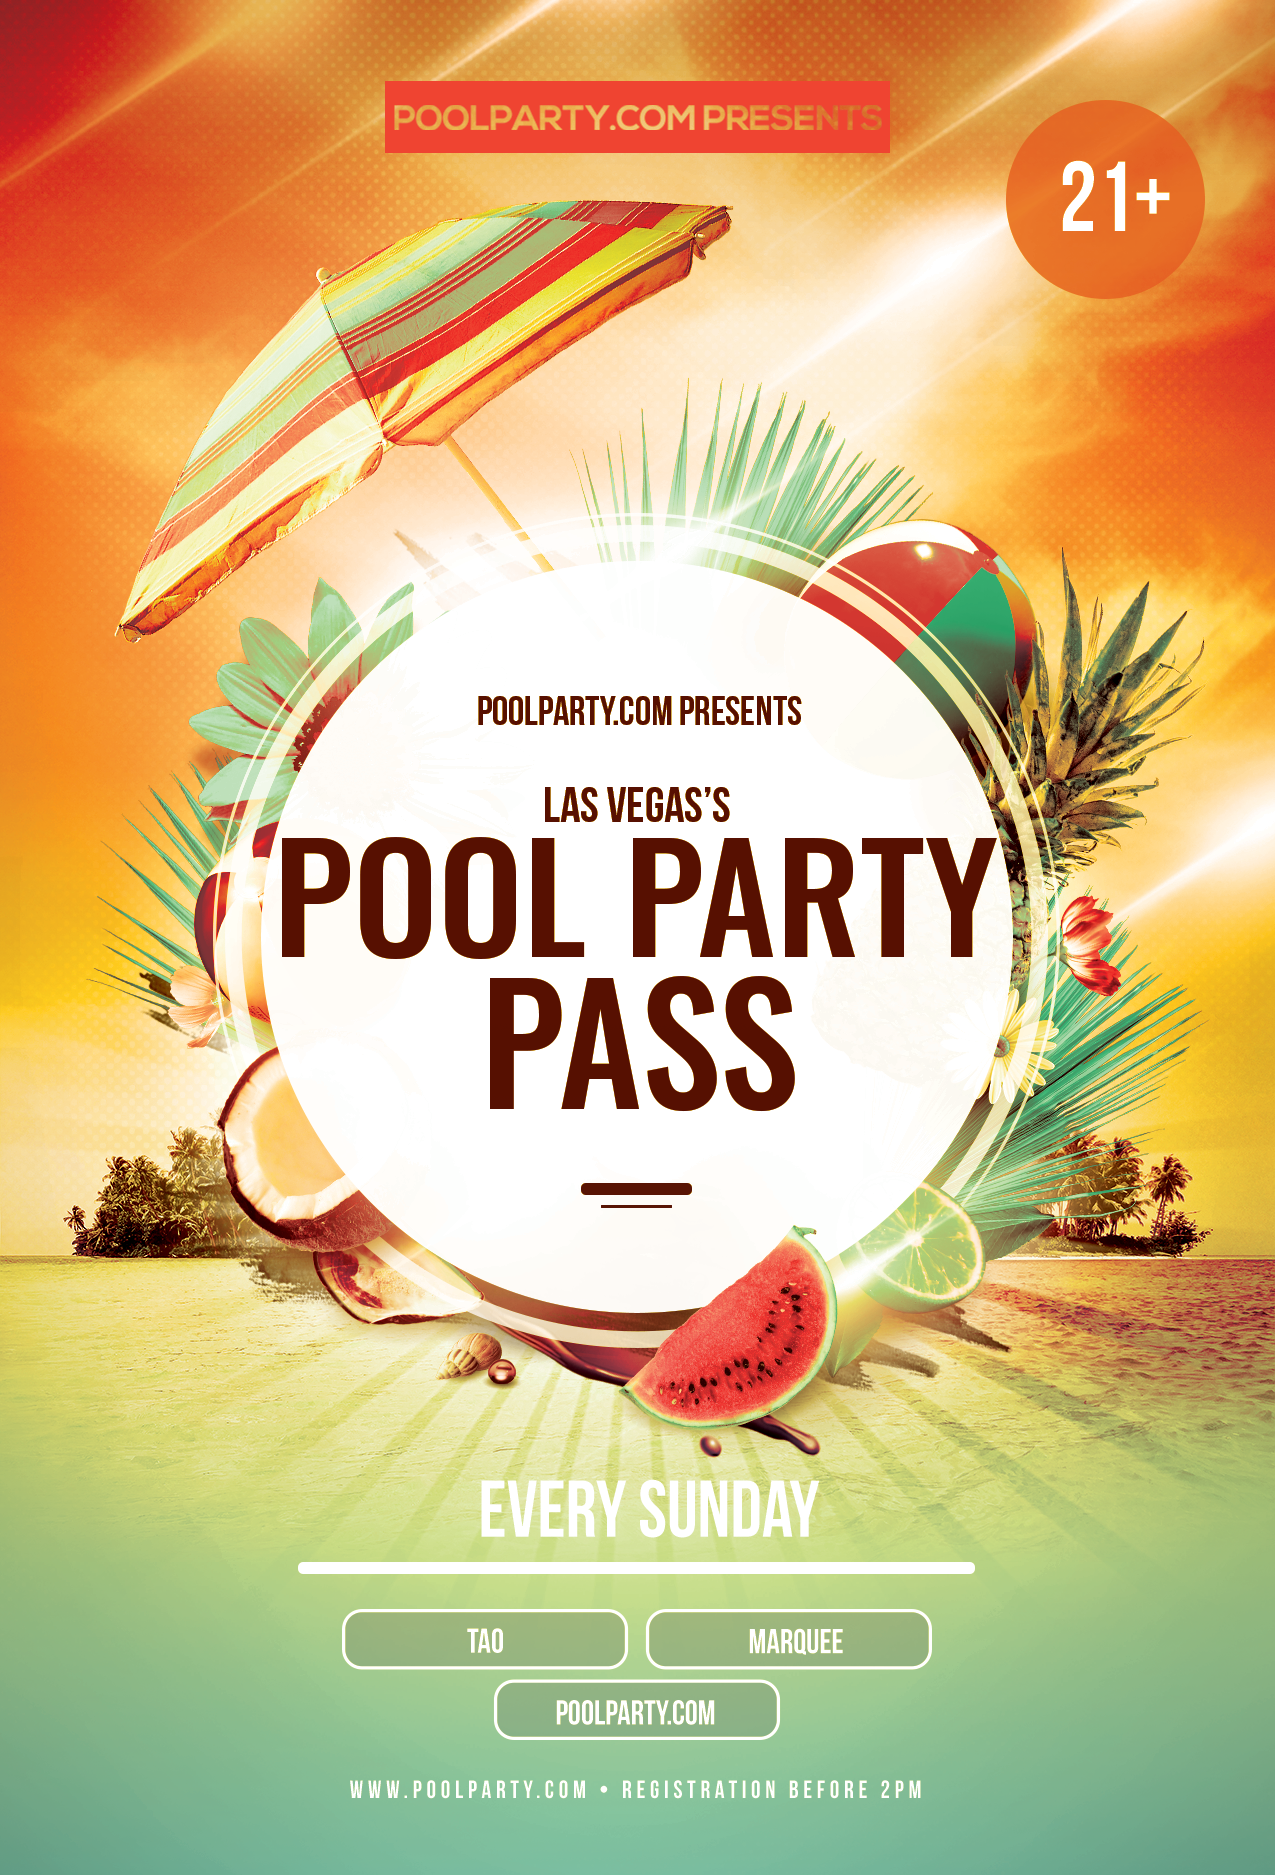 Sunday's Pool Party Pass (July 5th 2020)